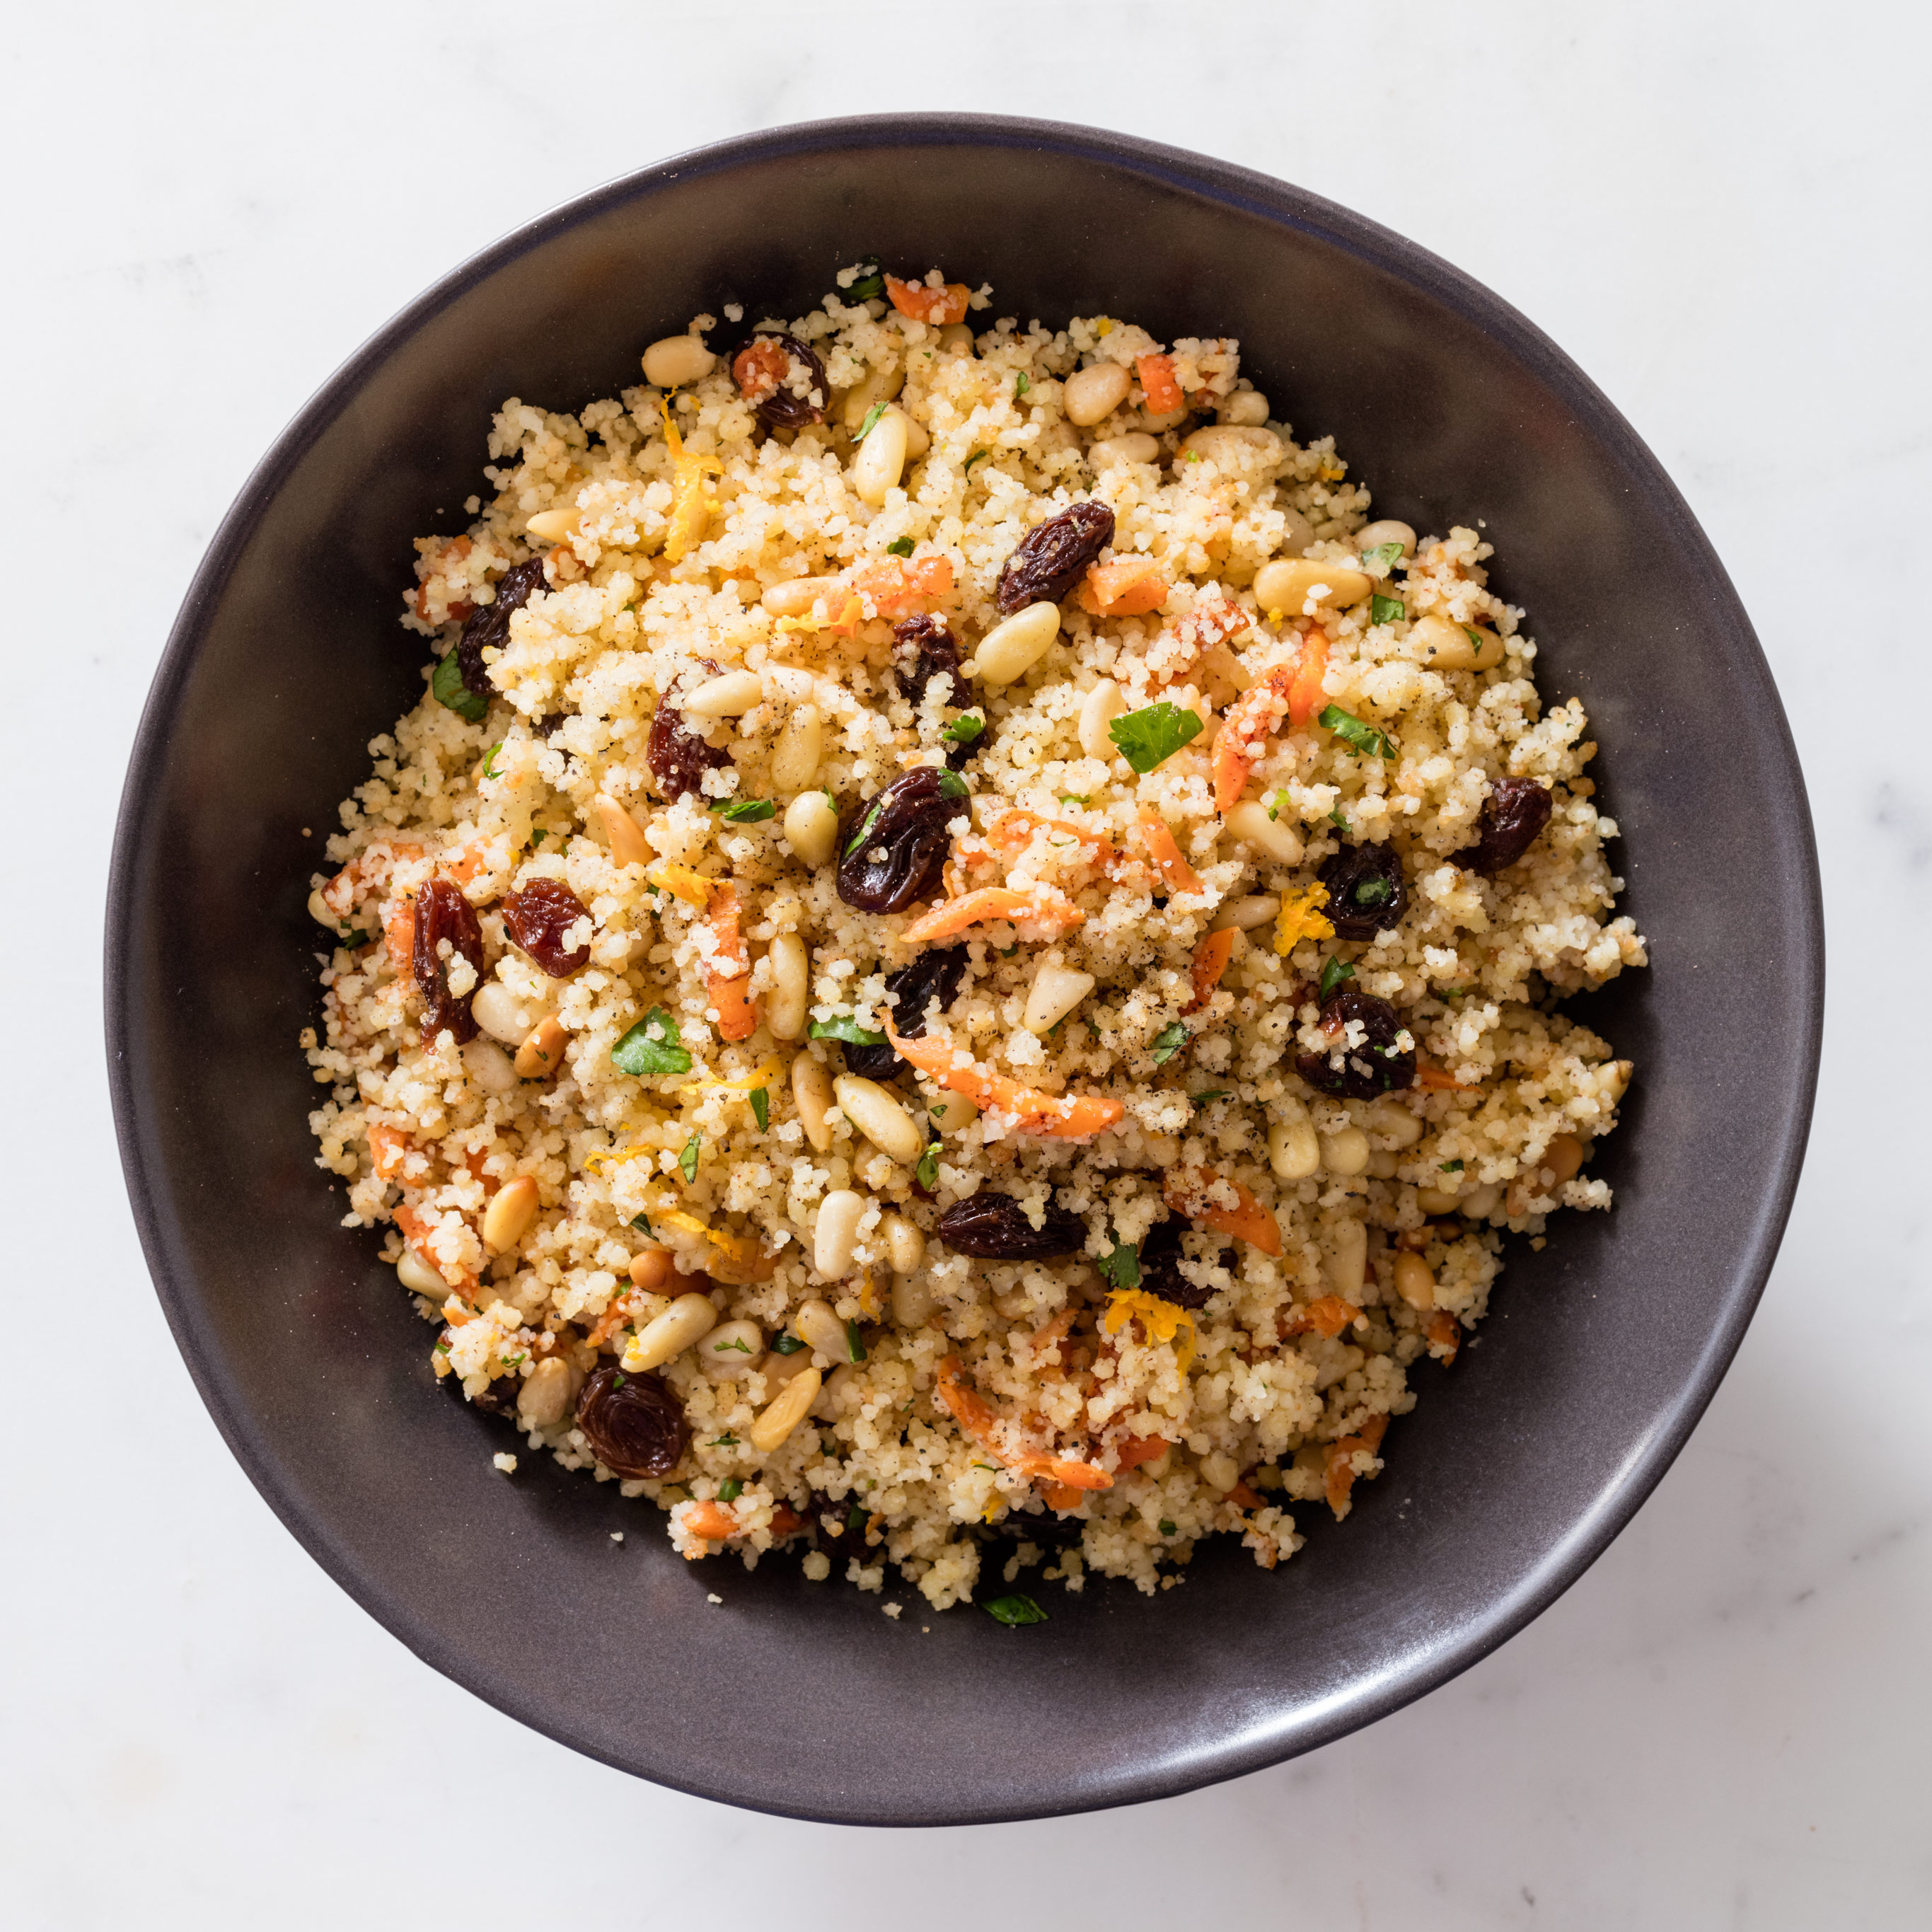 Couscous with Carrots, Raisins, and Pine Nuts | America's Test Kitchen